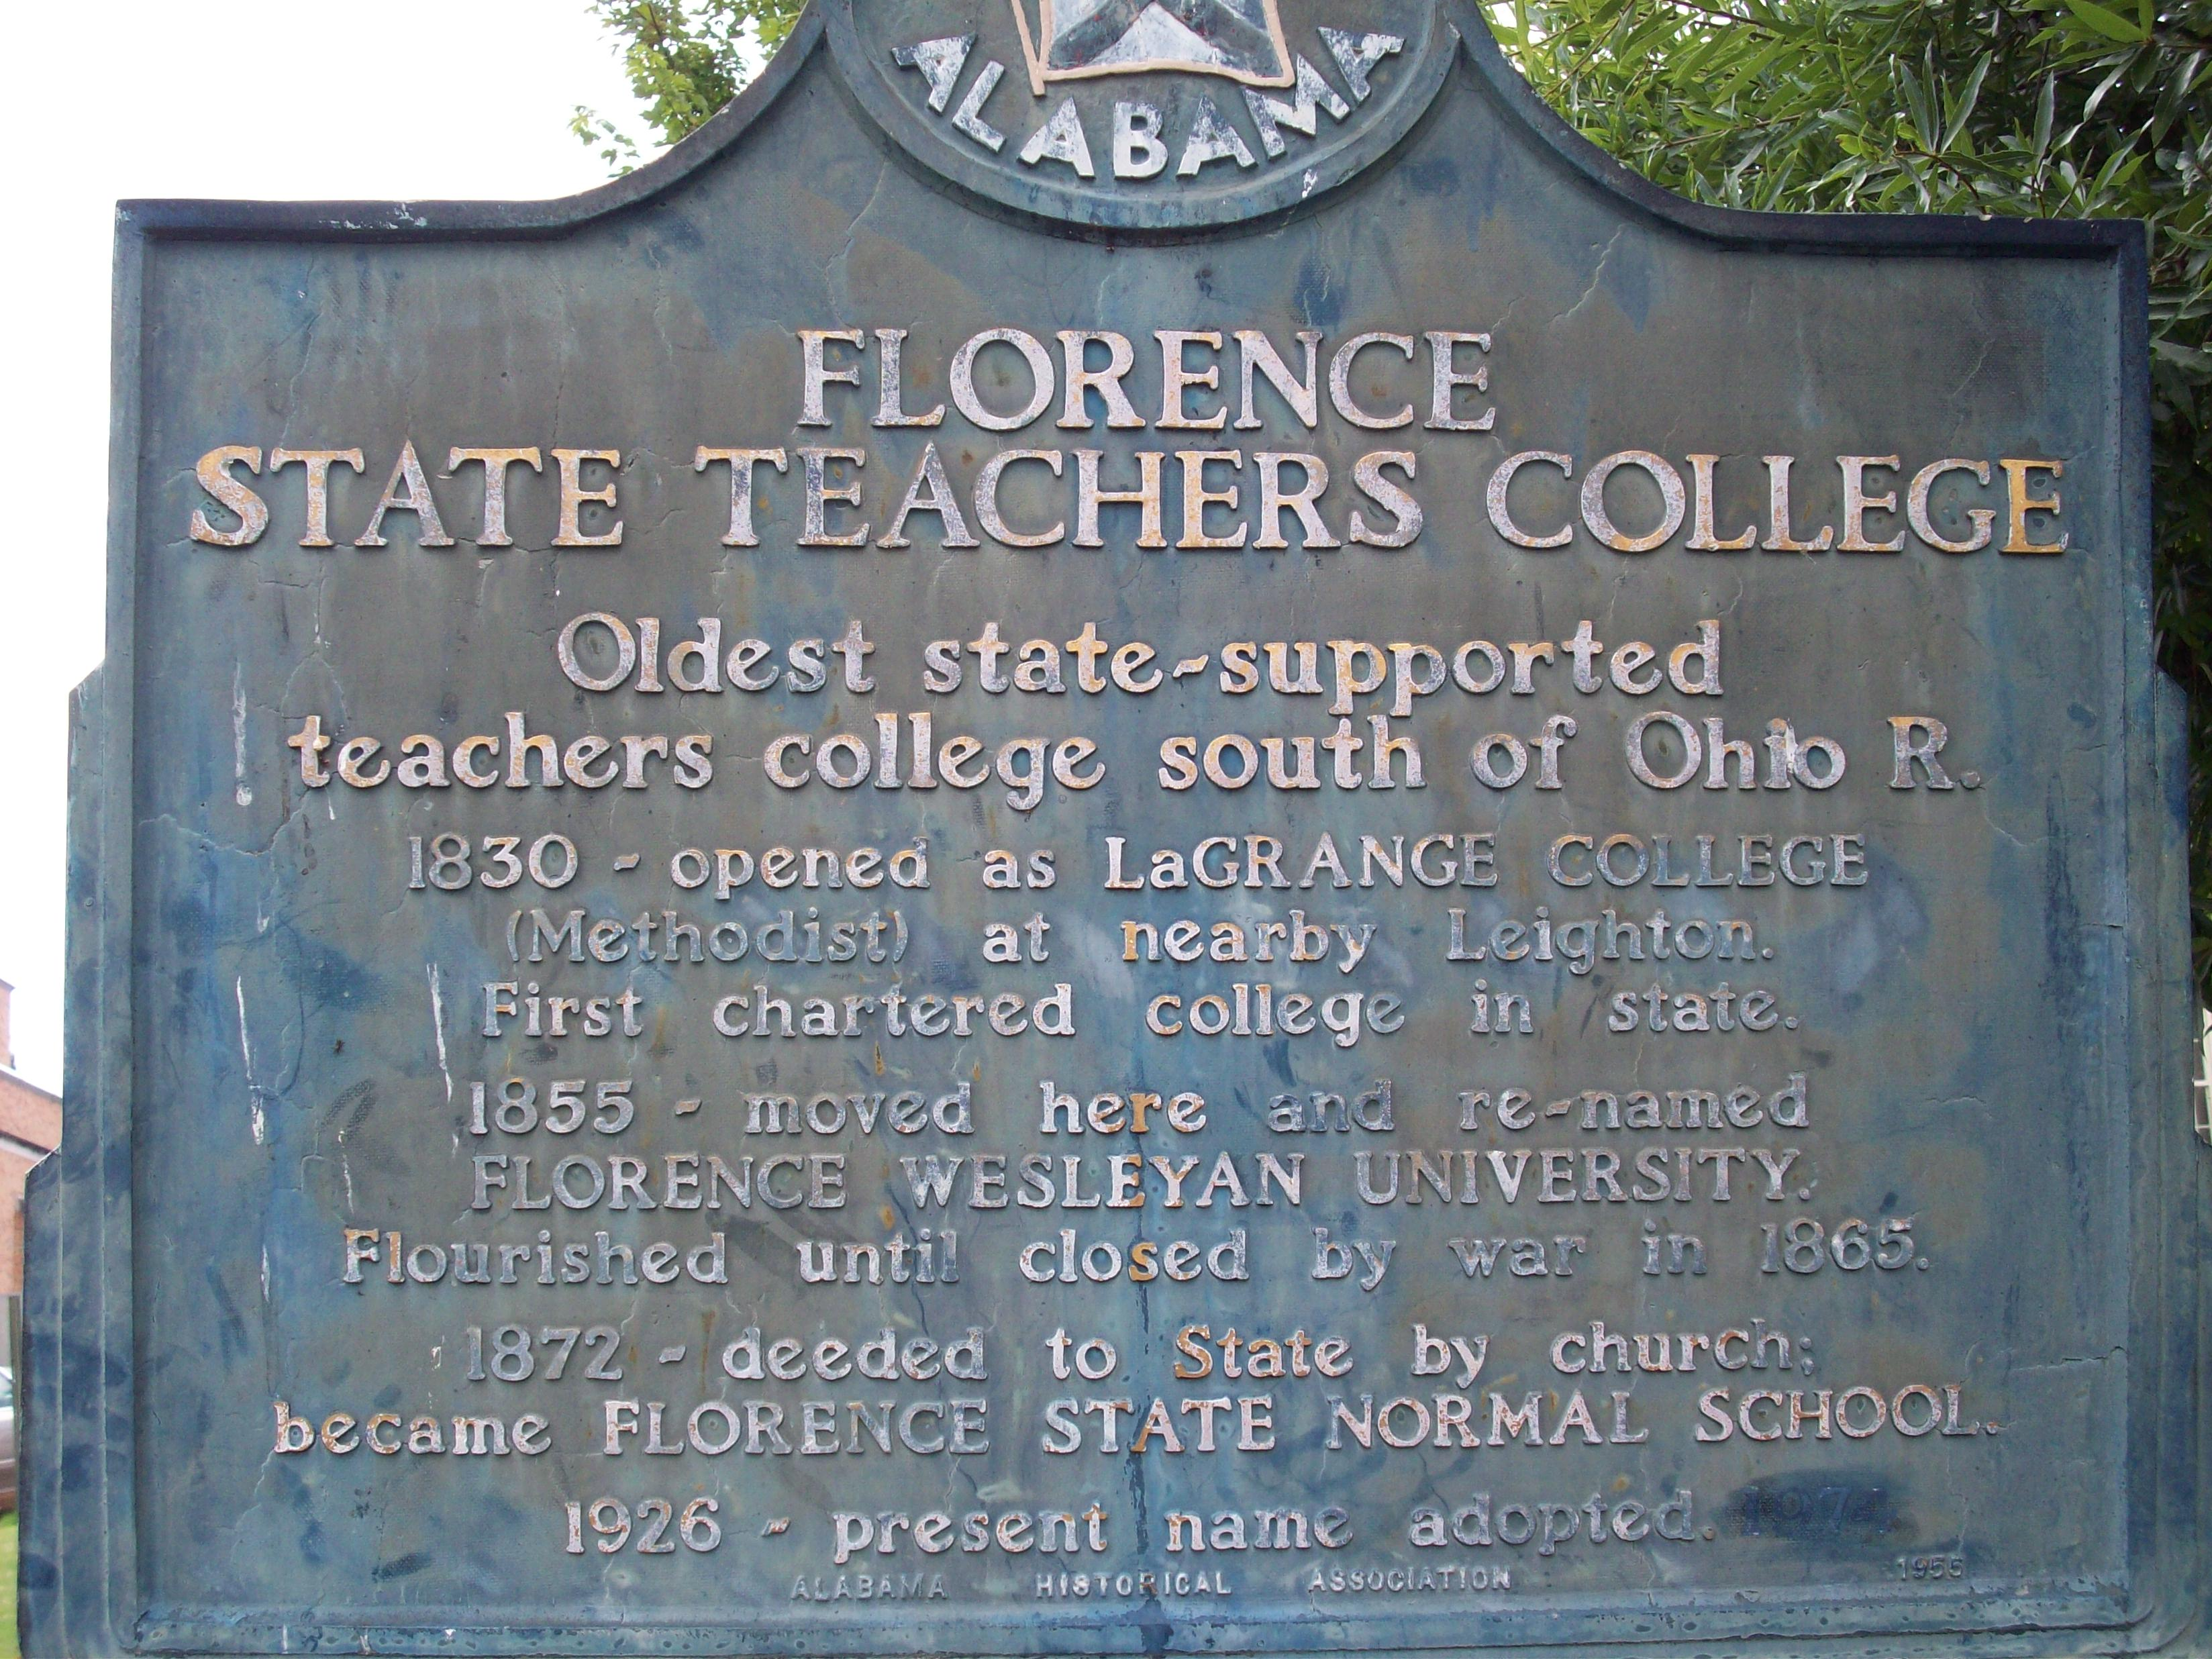 Florence State Teachers College historical marker